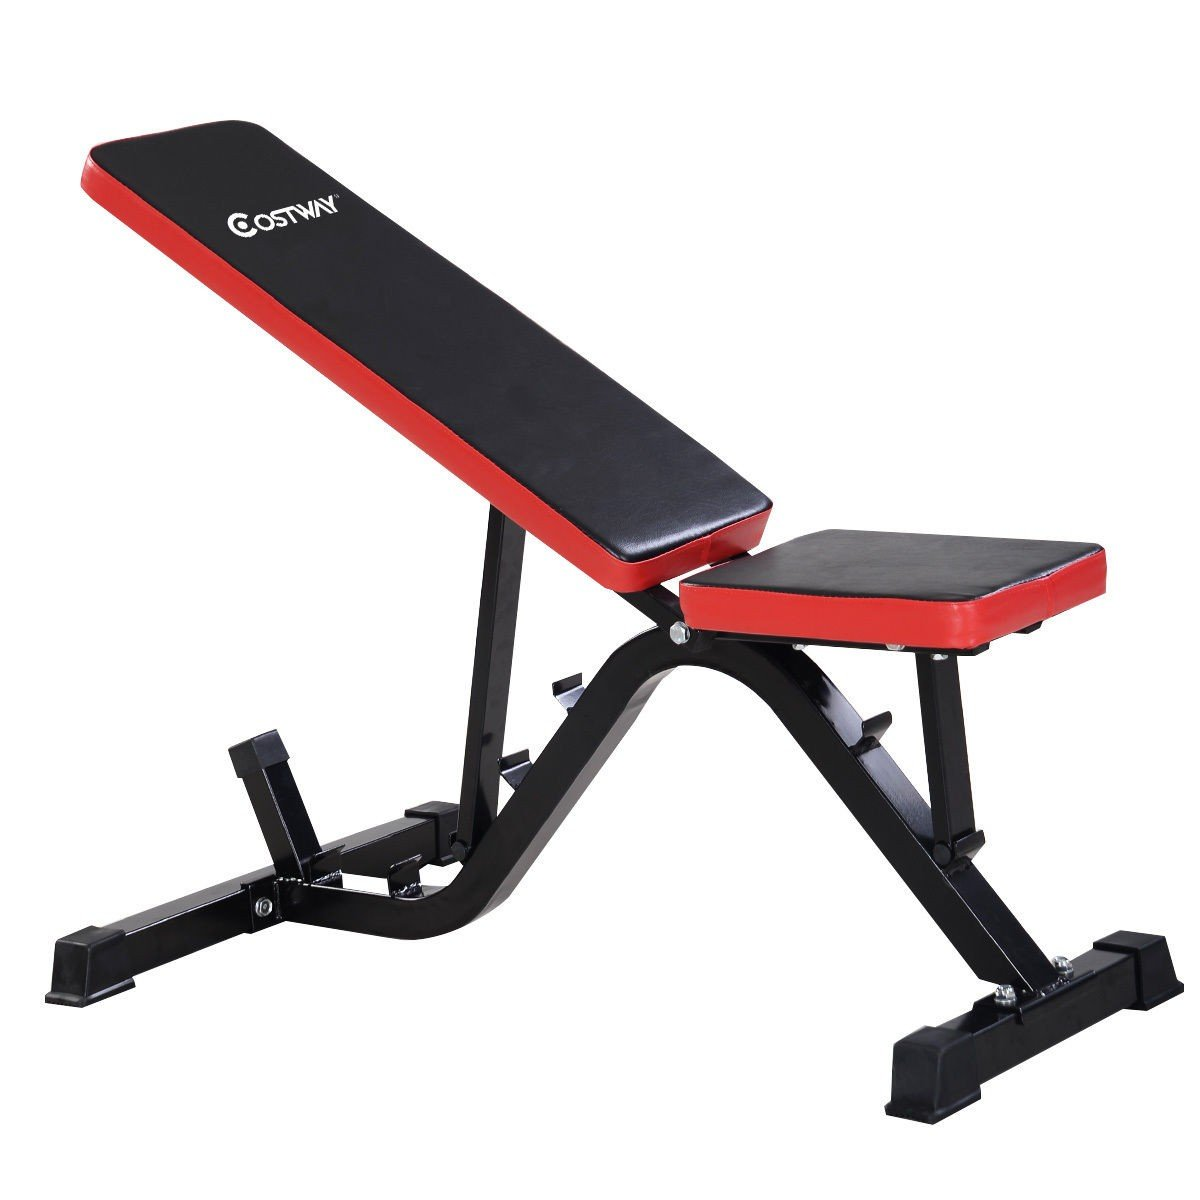 Red Costway Adjustable Sit up Incline Abs Bench   B077FFG1CY